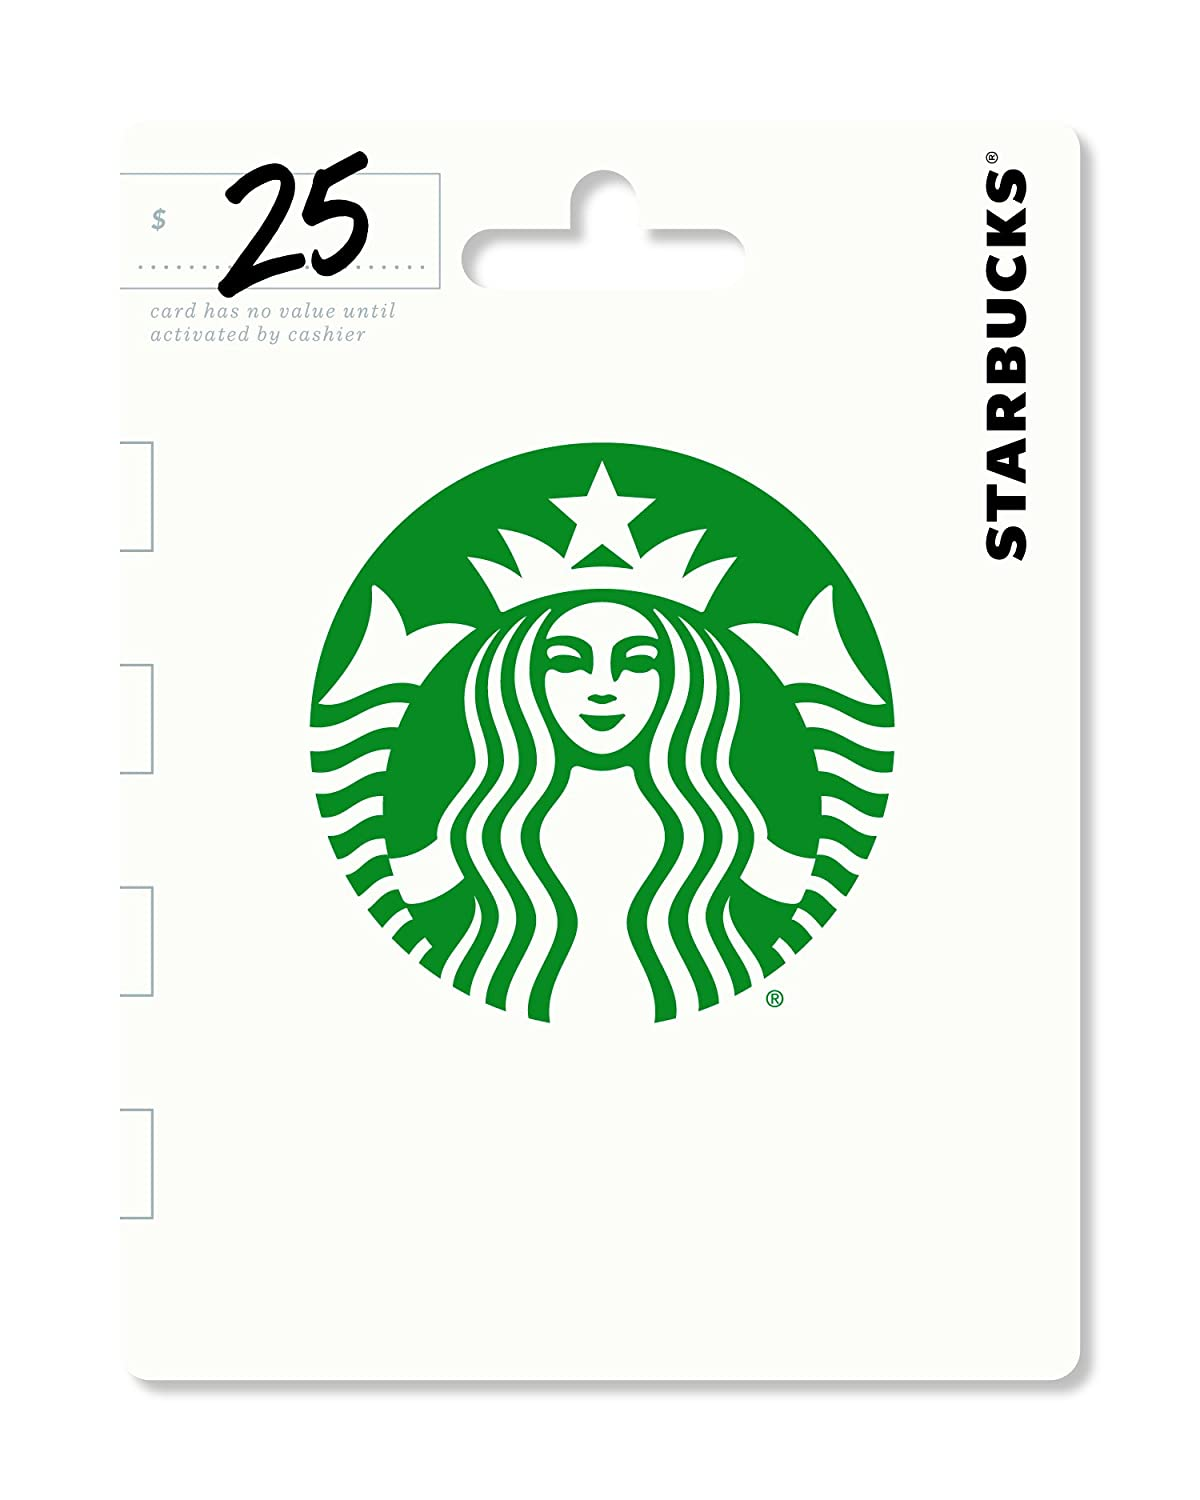 gifts-for-boss-starbucks-giftcard